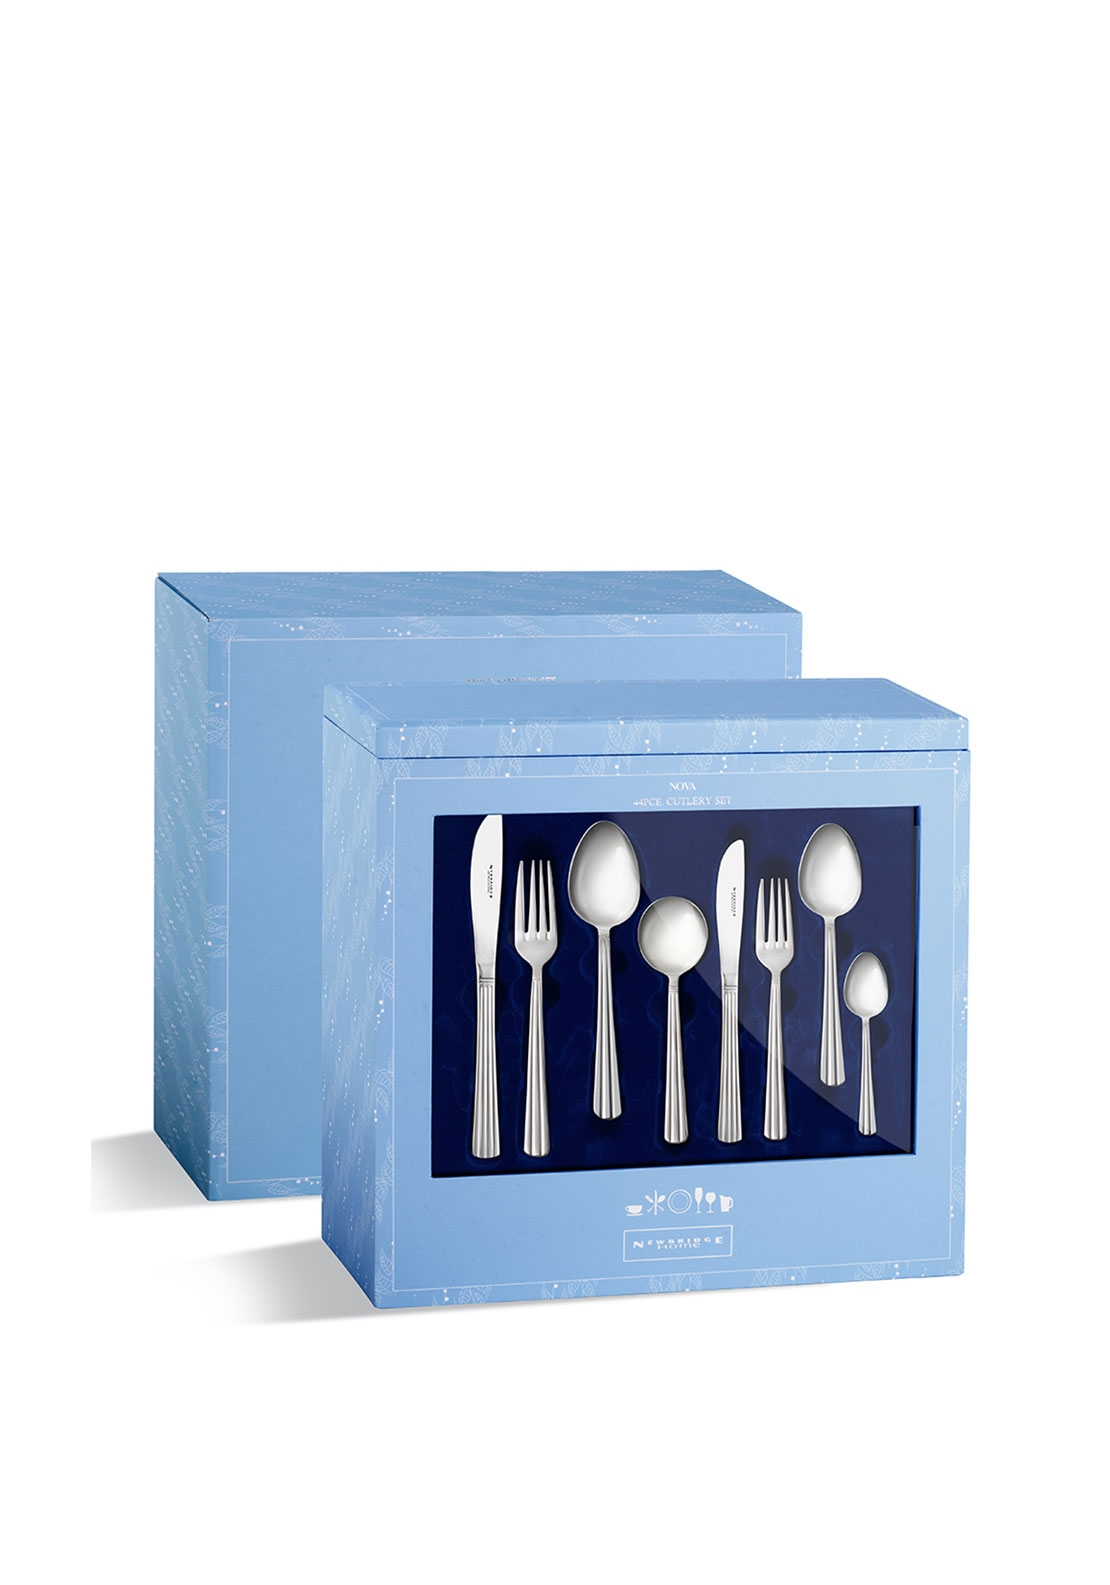 Newbridge Nova 44 Piece Cutlery Set, Silver